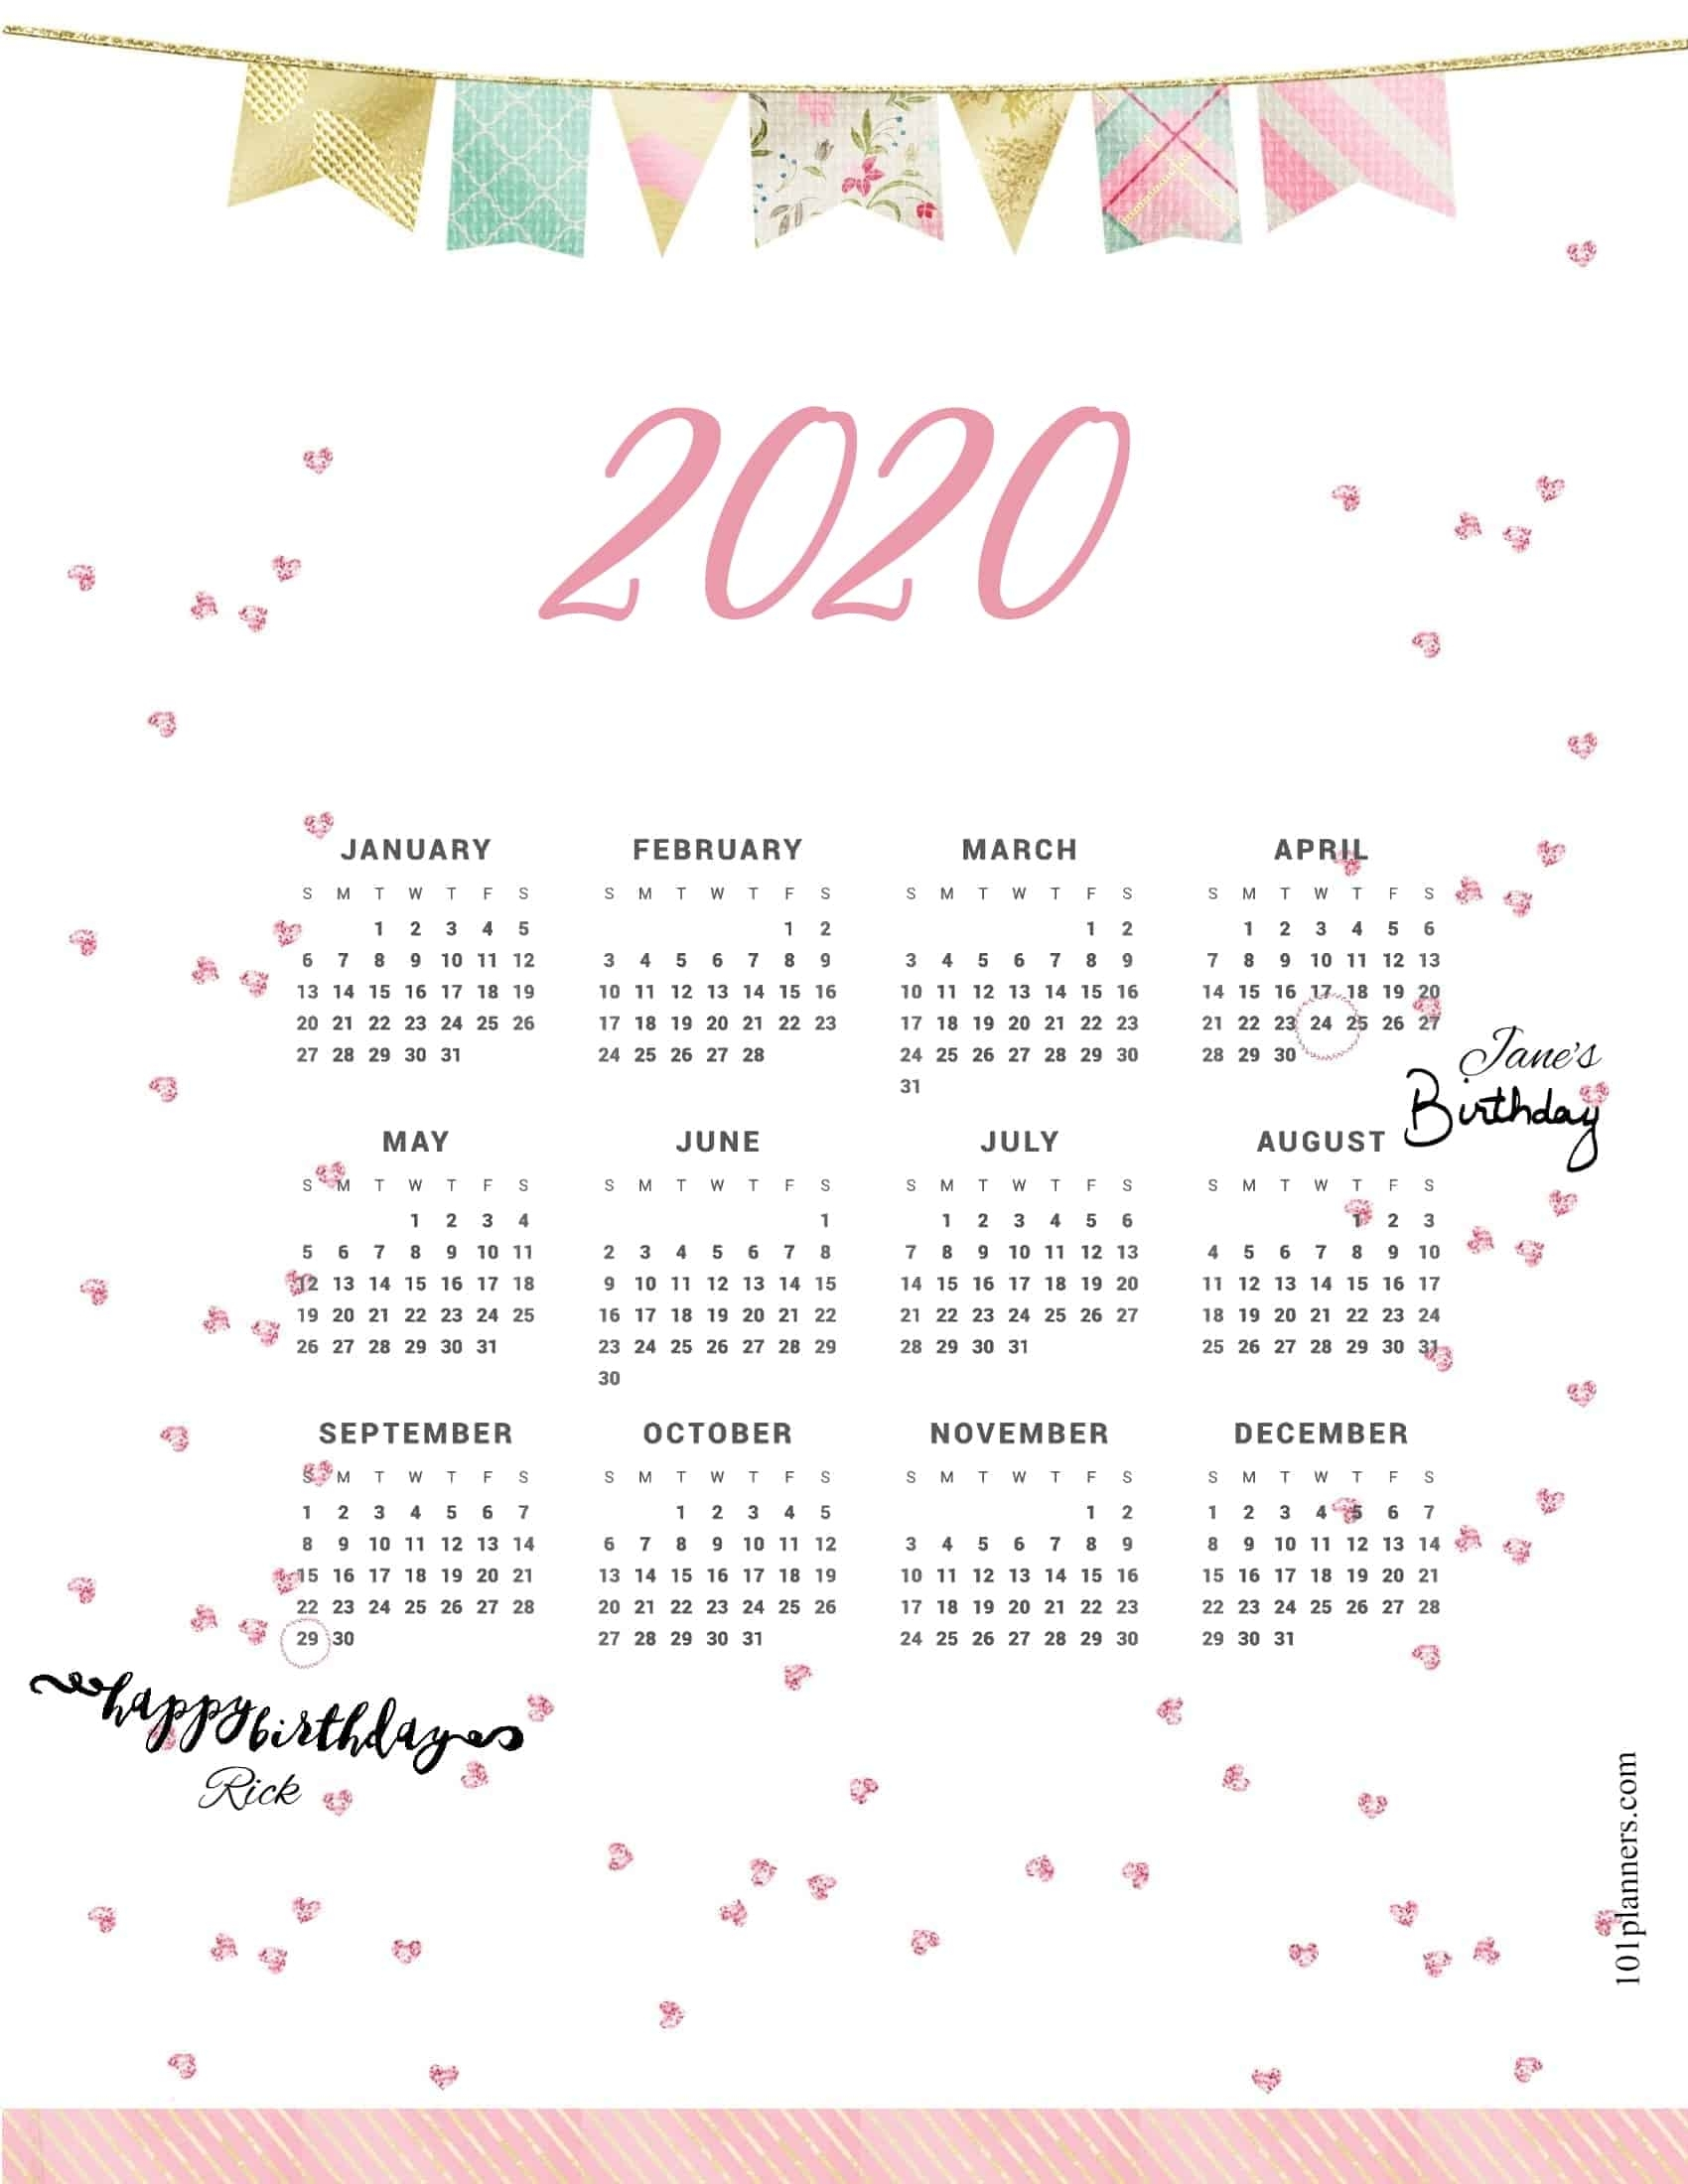 Free Printable 2020 Yearly Calendar At A Glance | 101 intended for Calendar At A Glance 2020